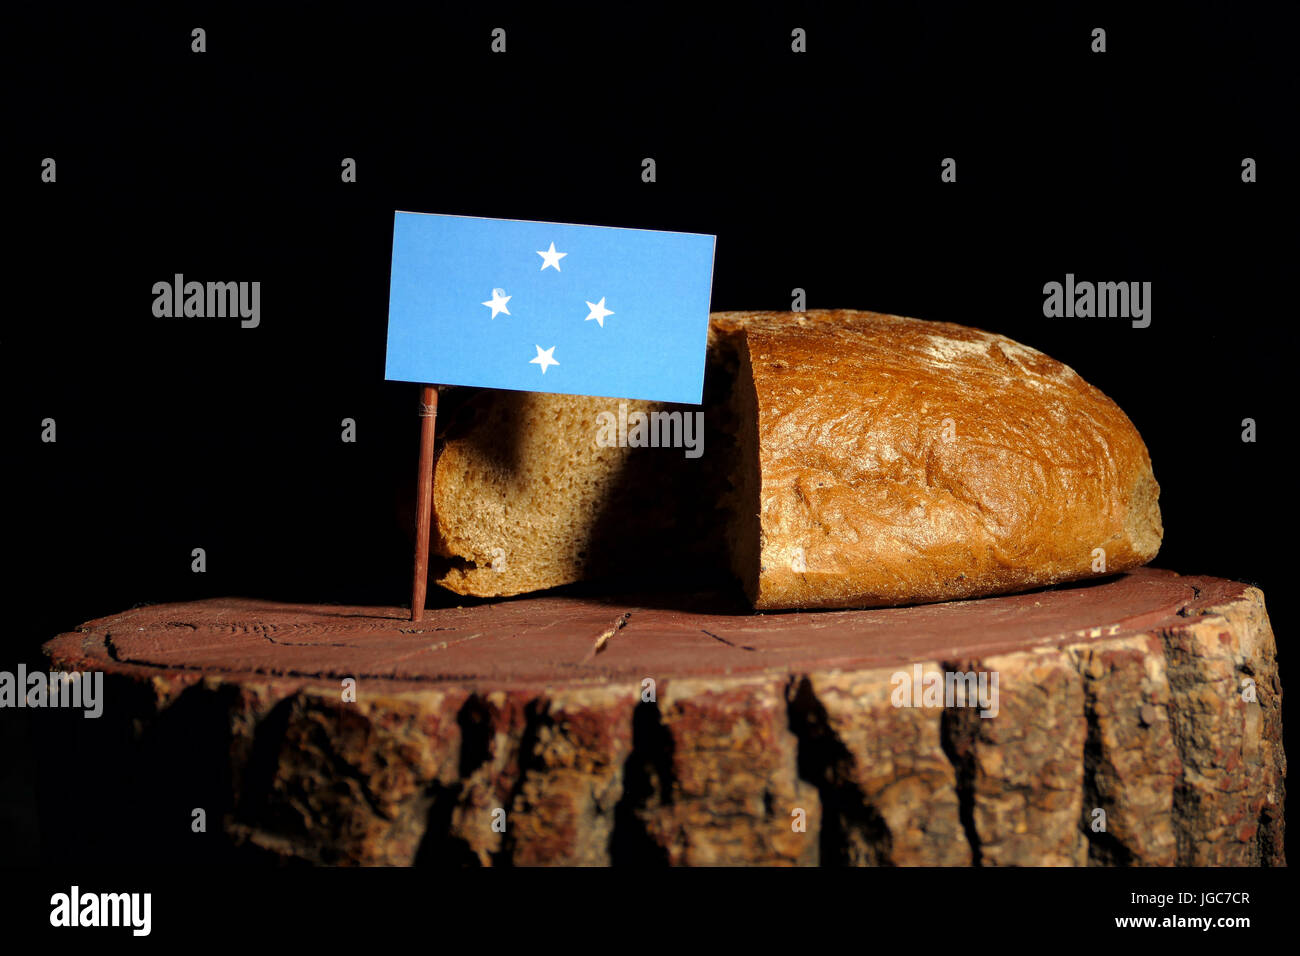 Micronesian flag on a stump with bread isolated - Stock Image